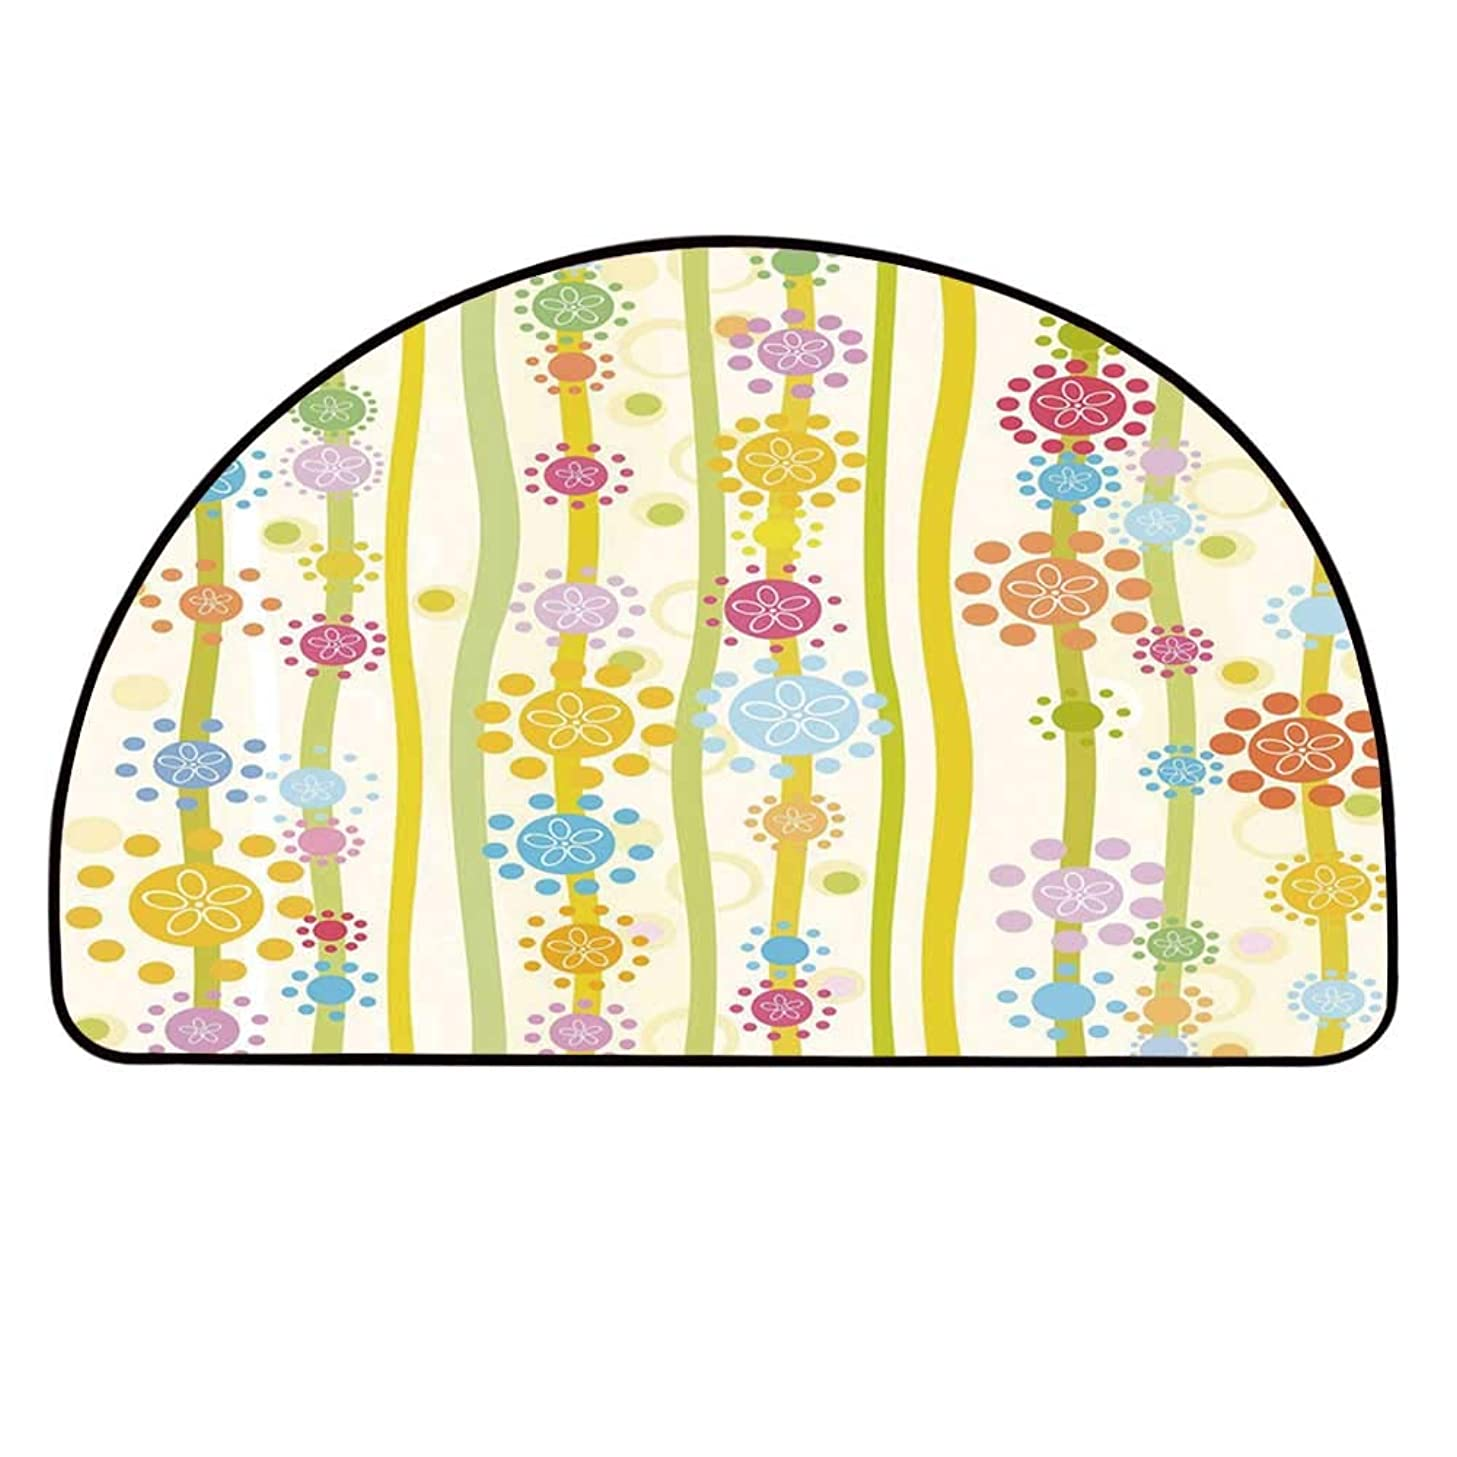 YOLIYANA Floral Doormat,Vertical Lines with Colorful Cartoon Style Flowers and Dots Kids Girls Fun Children Decorative Entryway Mat,11.8